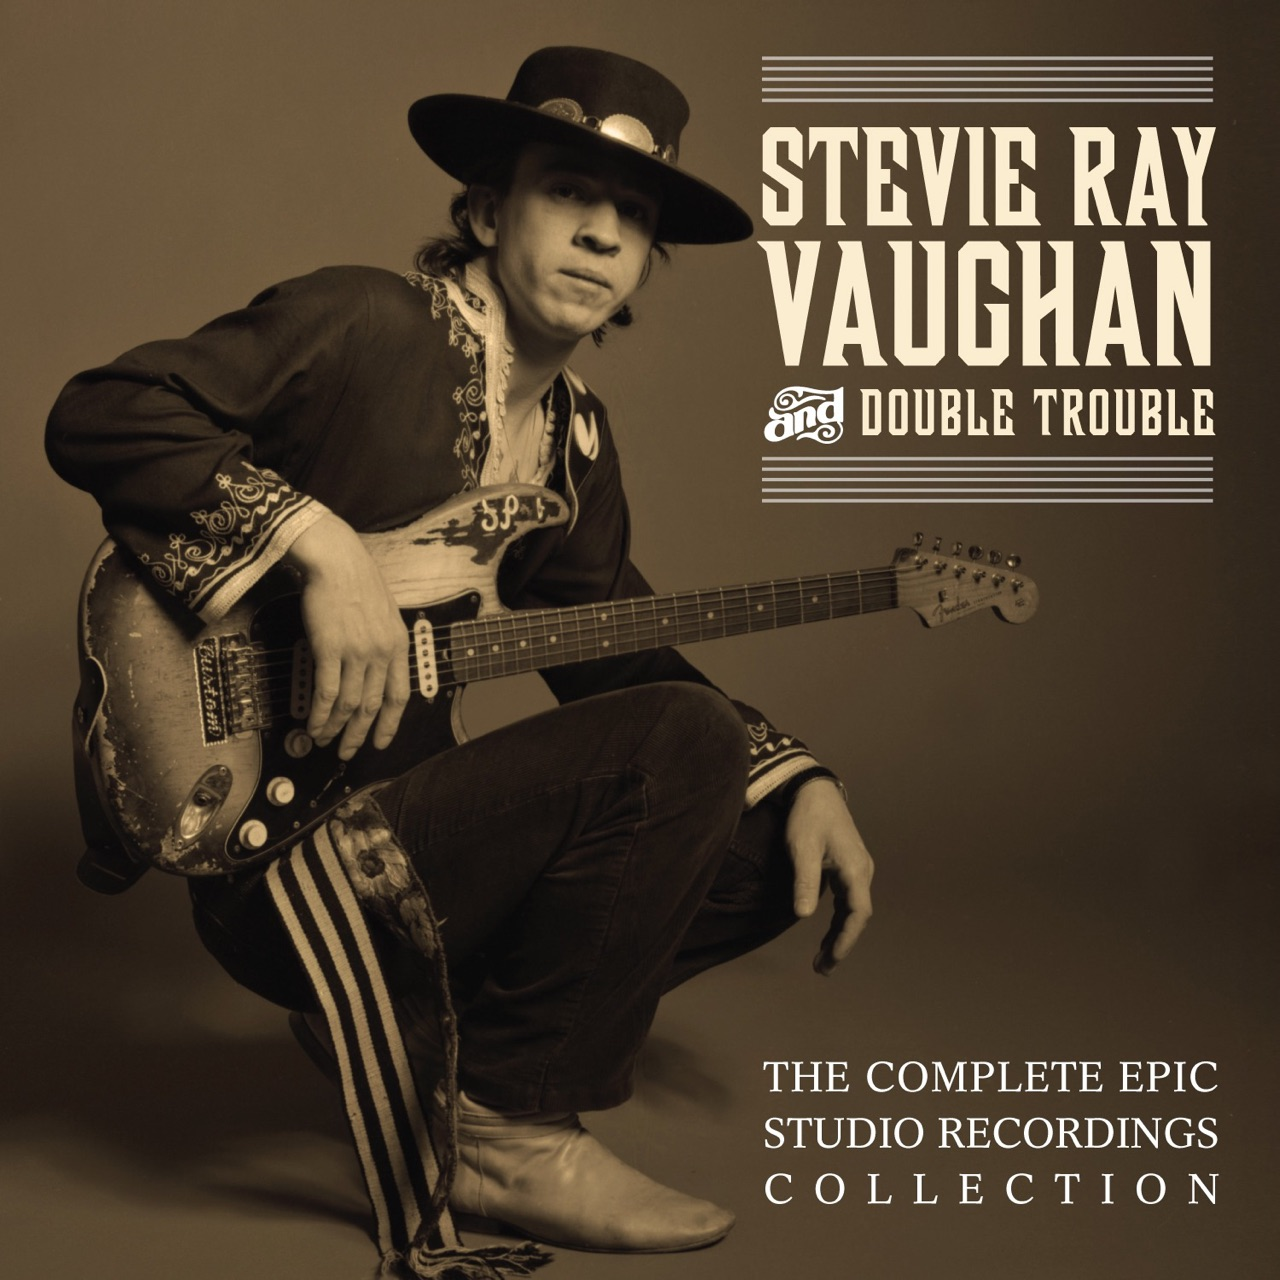 the life of stevie ray vaughan essay